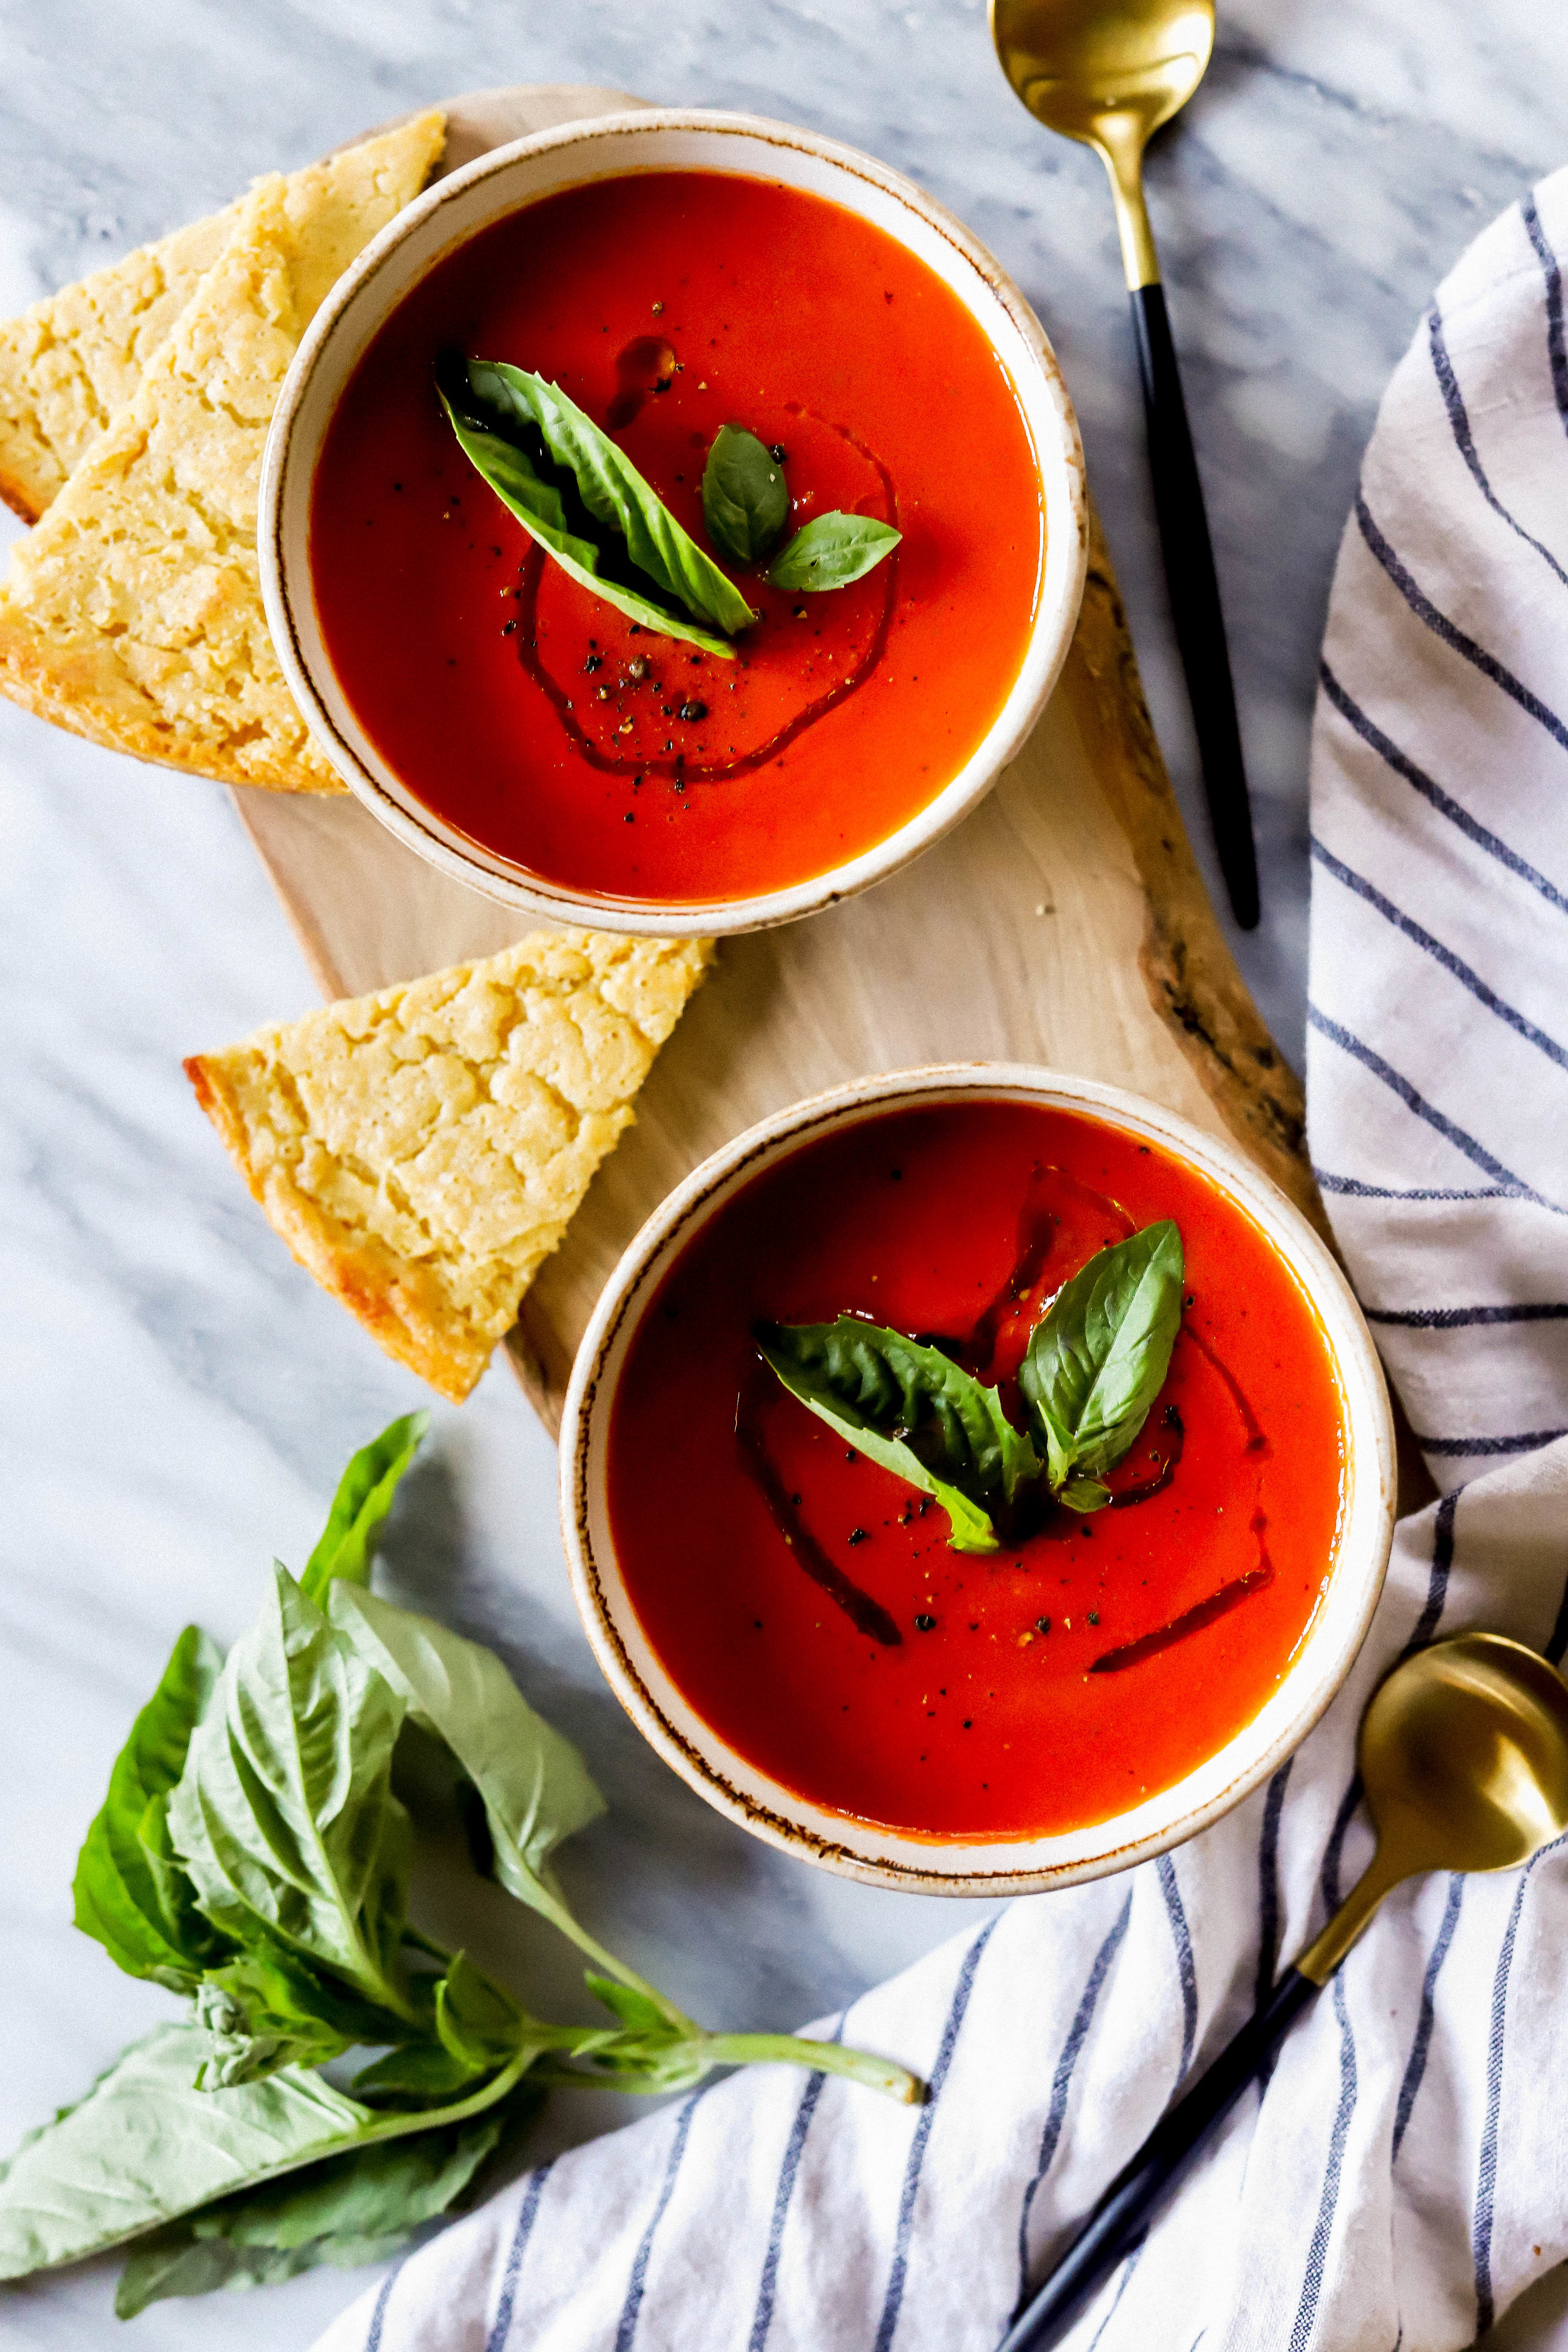 Easy homemade tomato soup with a side of socca bread